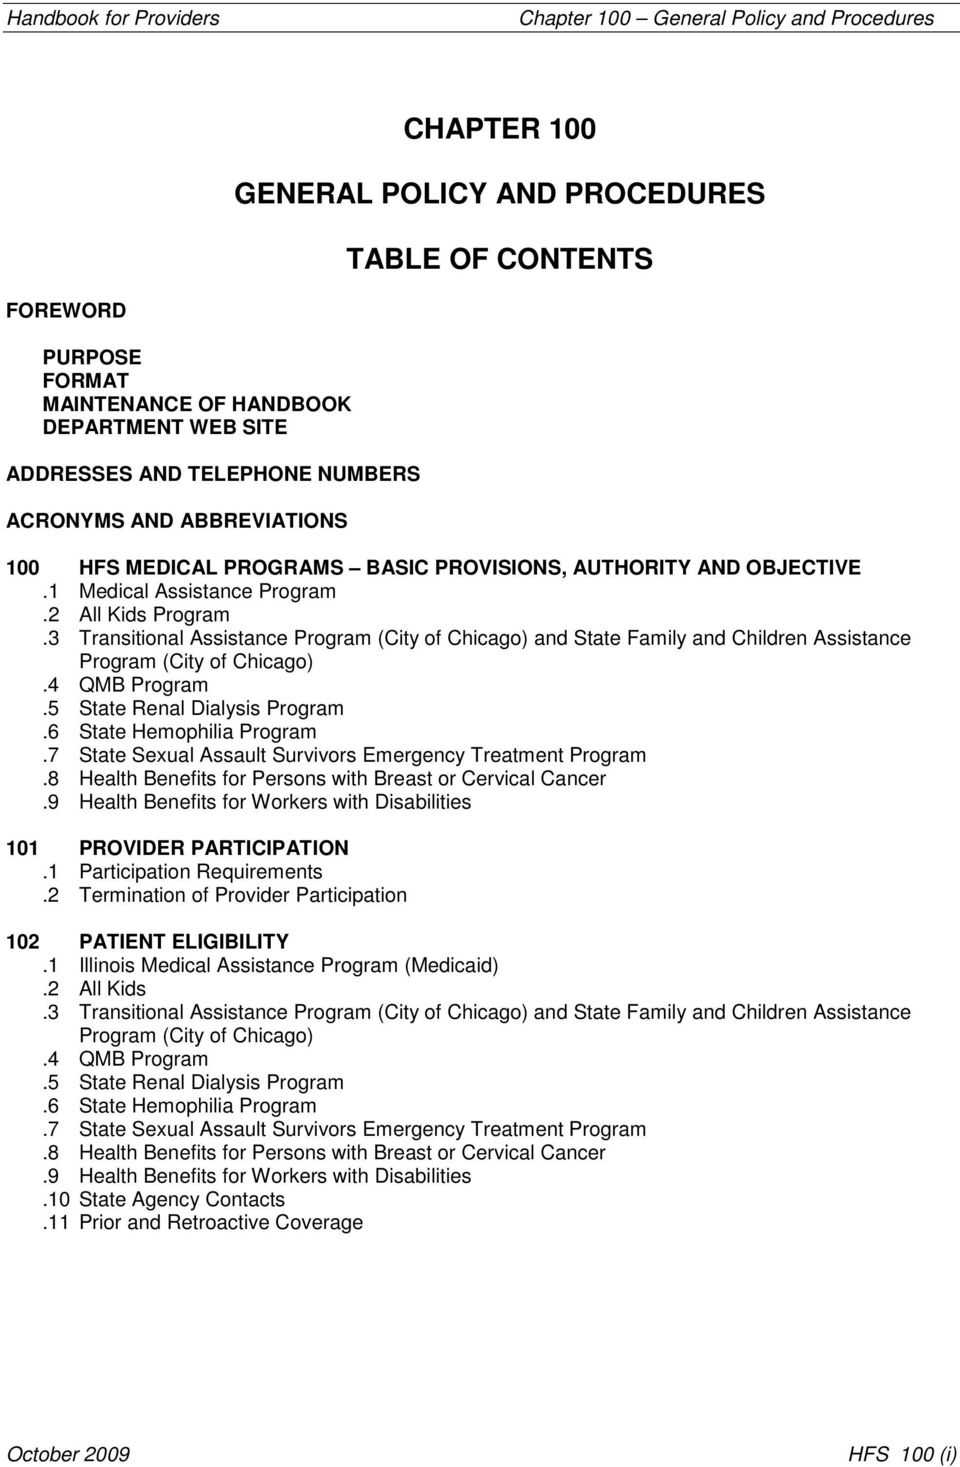 3 Transitional Assistance Program (City of Chicago) and State Family and Children Assistance Program (City of Chicago).4 QMB Program.5 State Renal Dialysis Program.6 State Hemophilia Program.